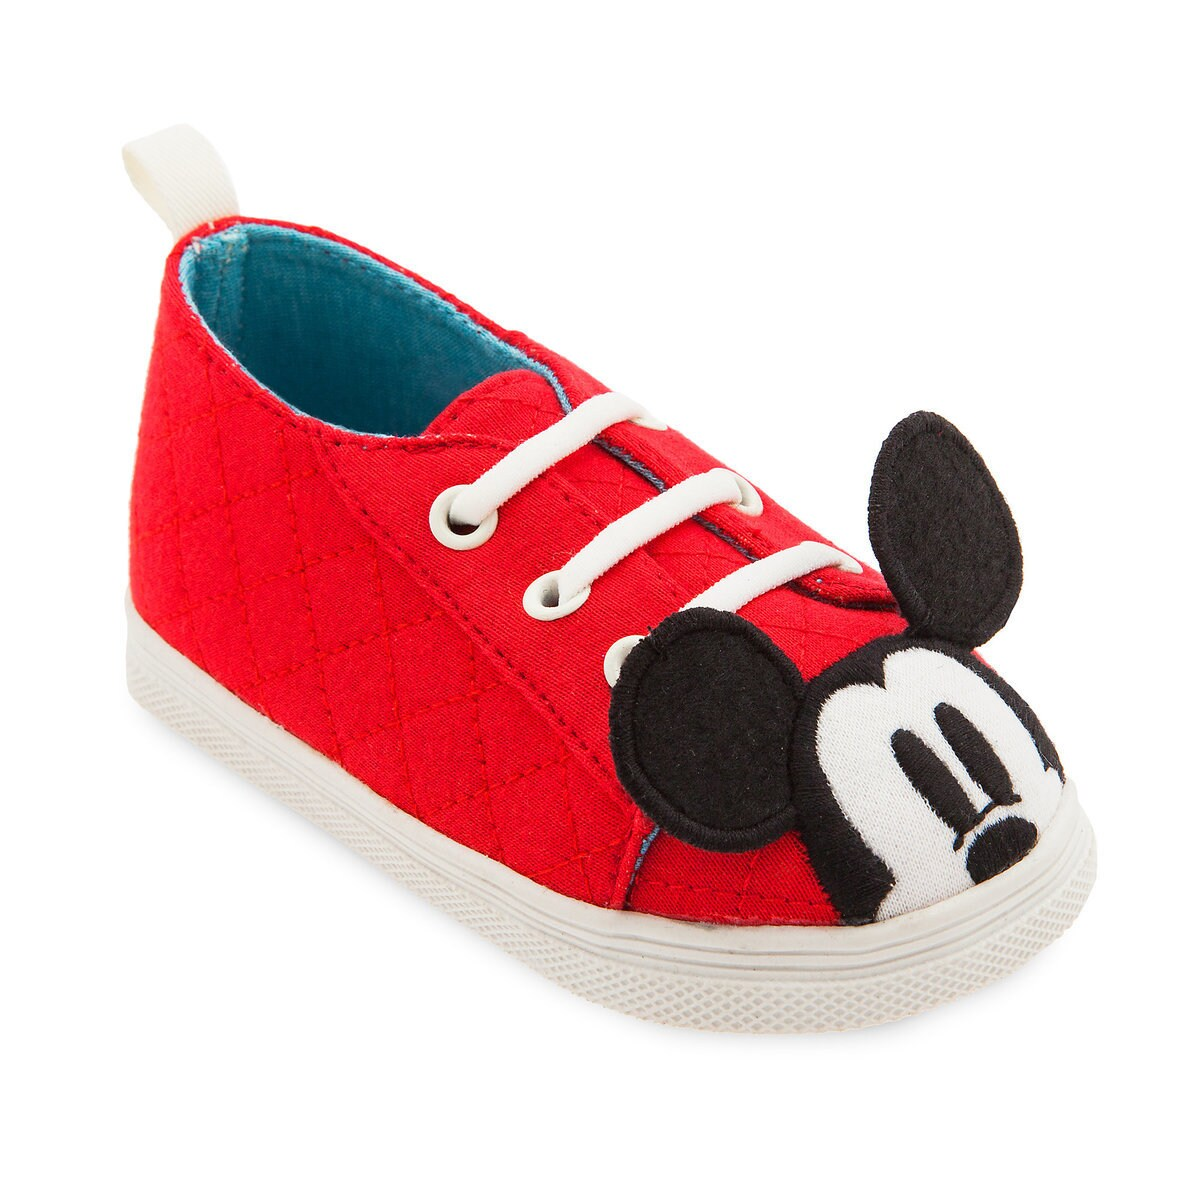 3f1ac3011efc64 Product Image of Mickey Mouse Shoes for Baby   1